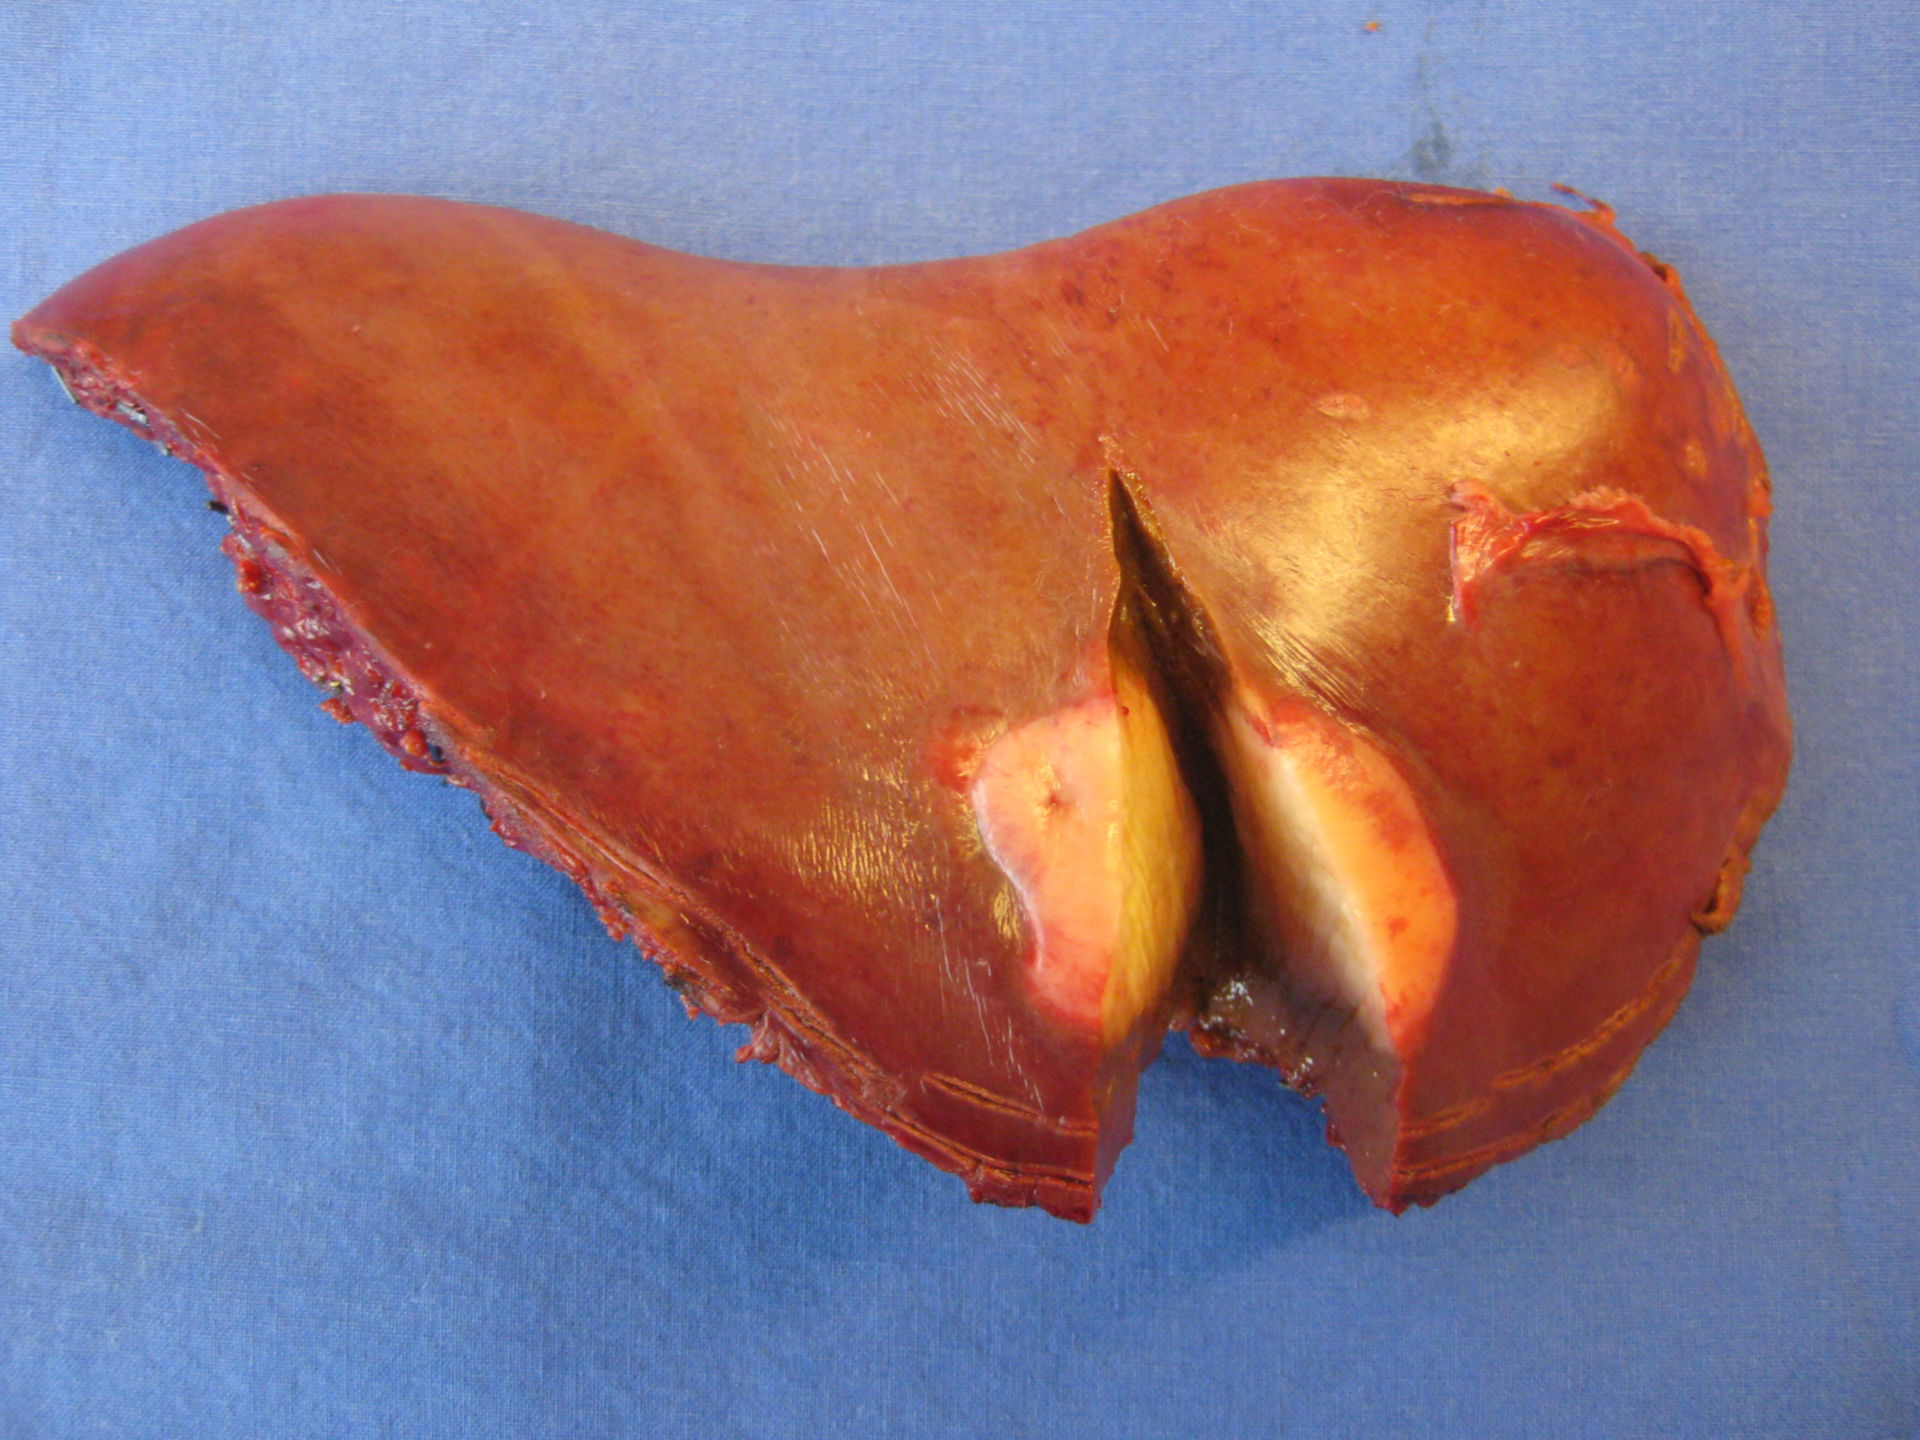 Hemihepatectomy in a case of liver tumor